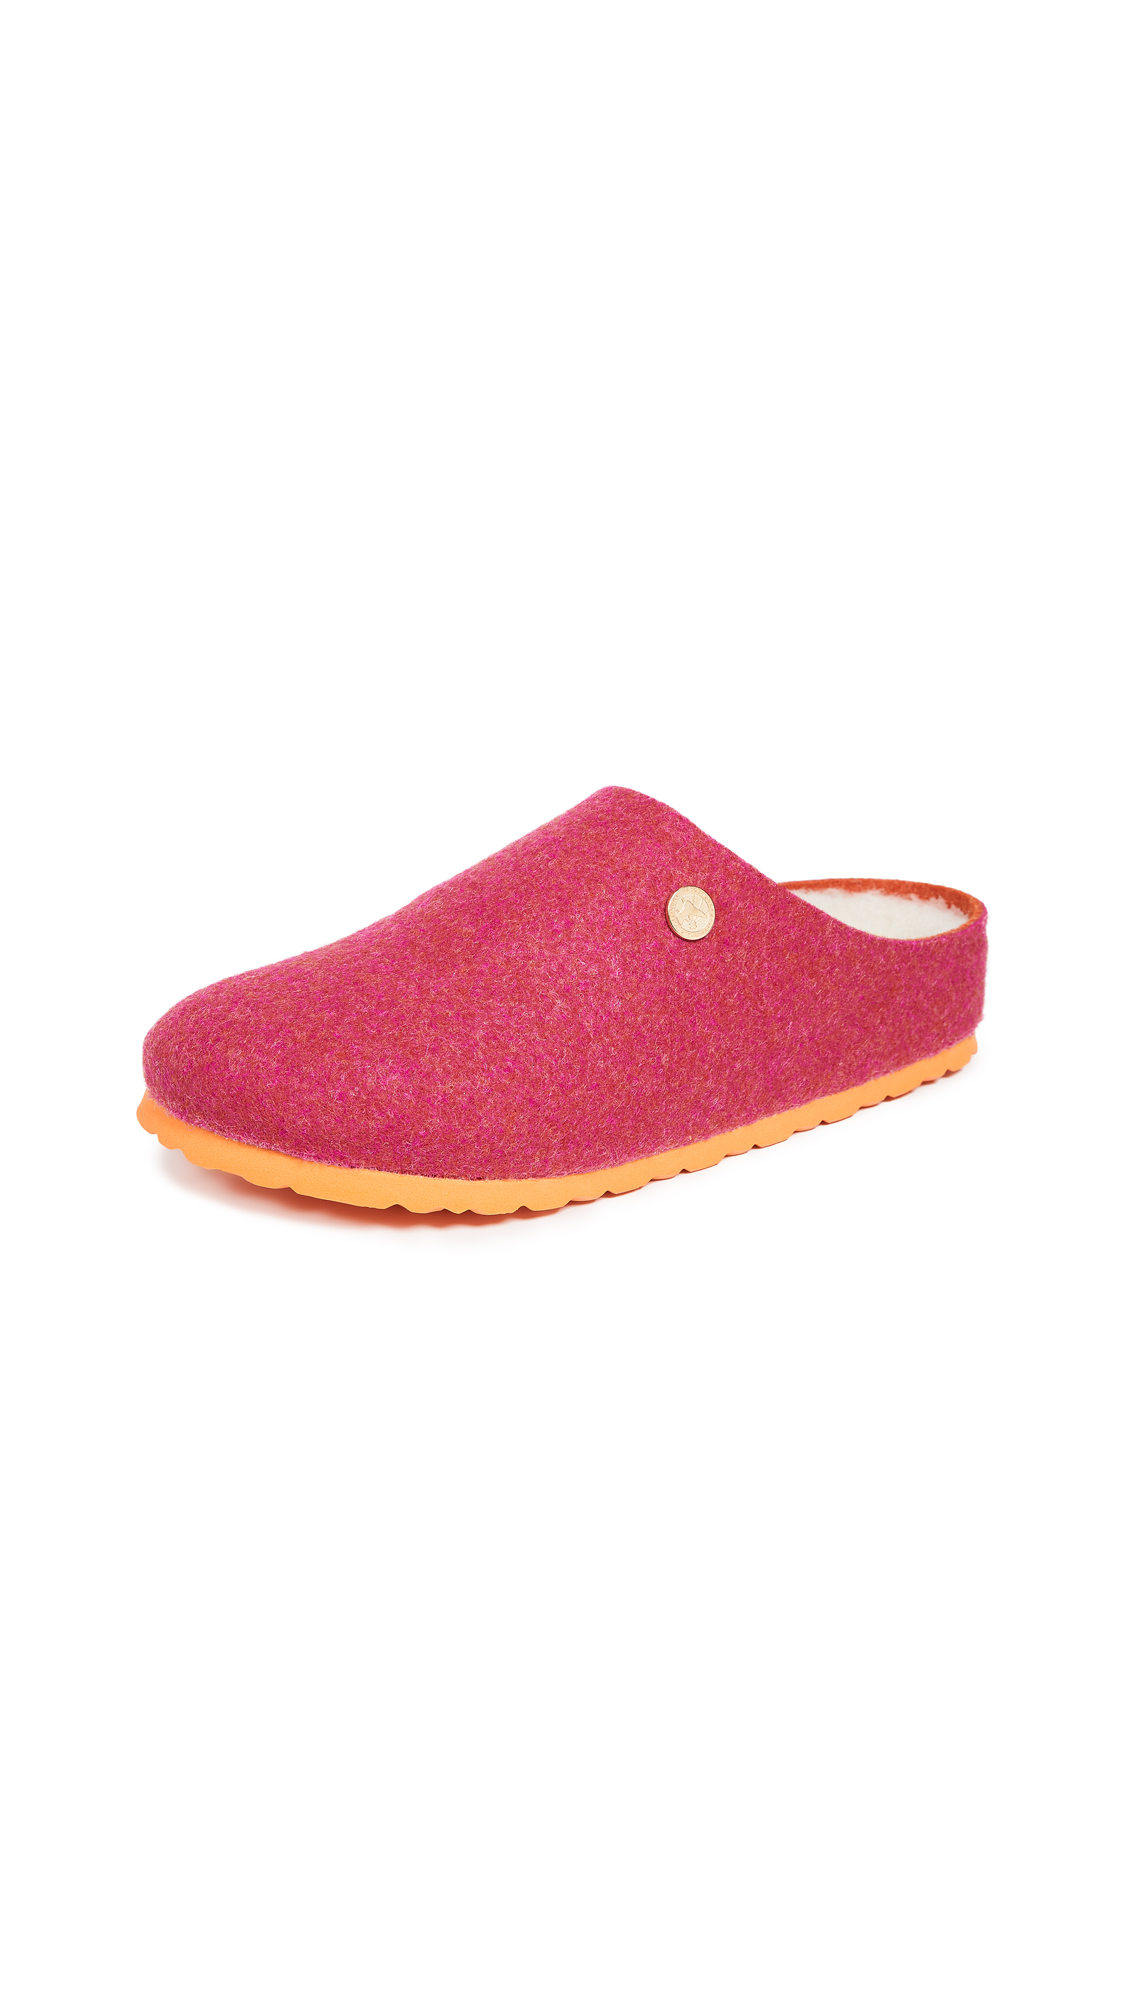 Birkenstock Kaprun Happy Lamb Clogs - Double-Face Fuchsia